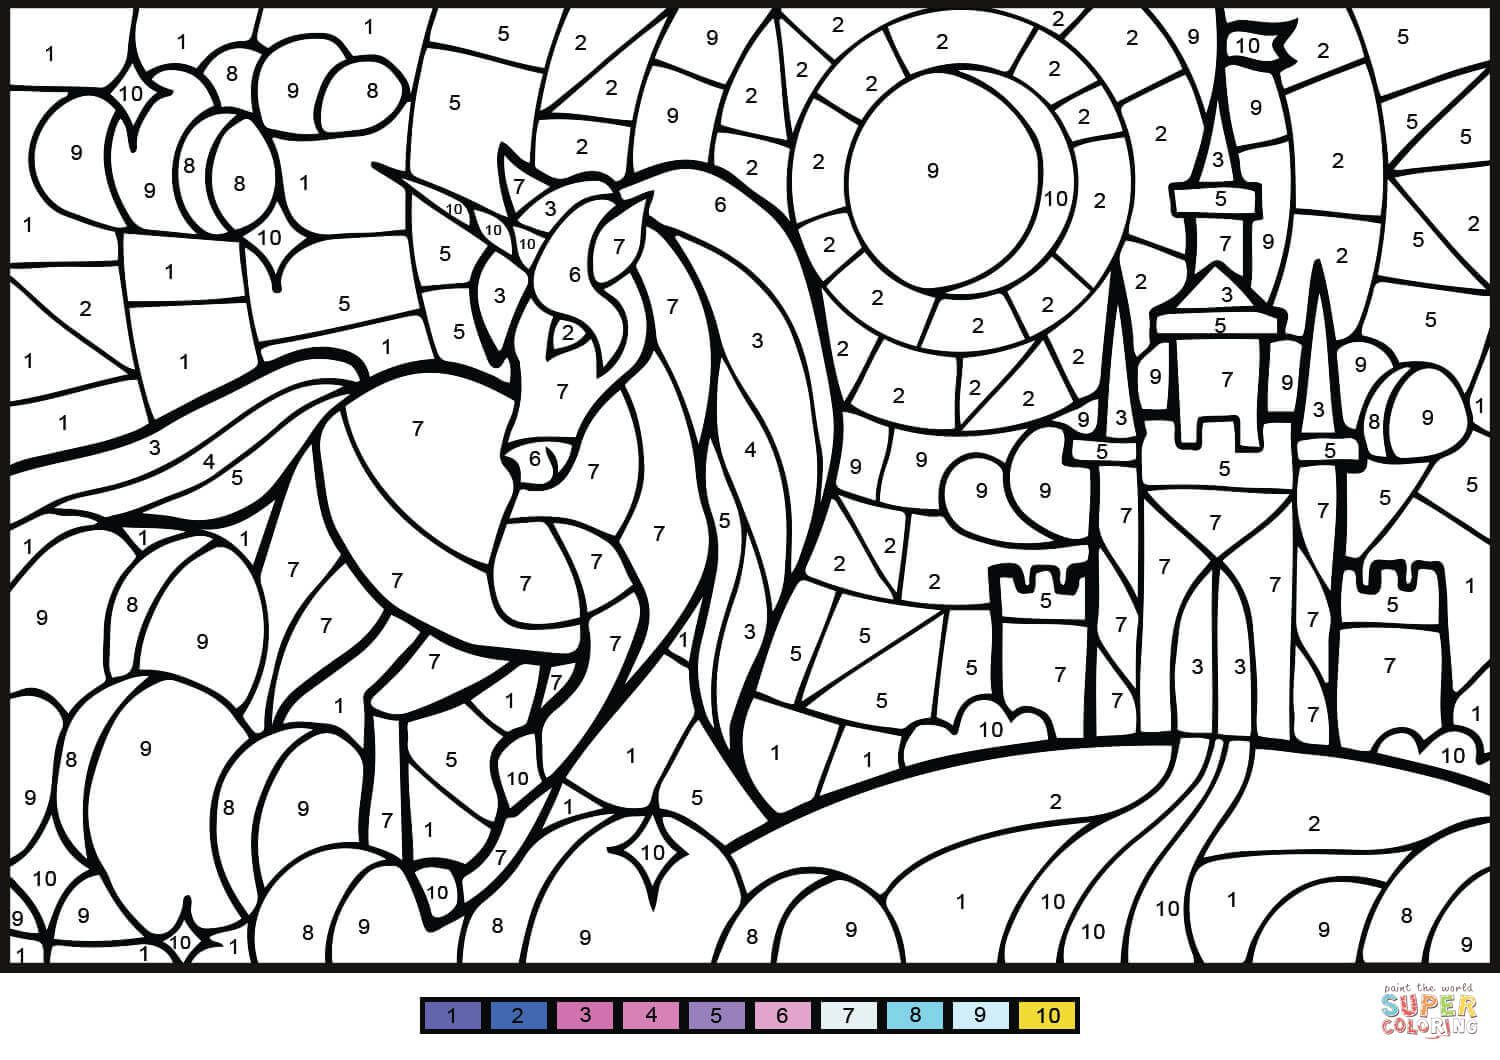 Unicorn Color By Number Free Printable Coloring Pages In 2021 Color By Number Printable Unicorn Coloring Pages Online Coloring Pages